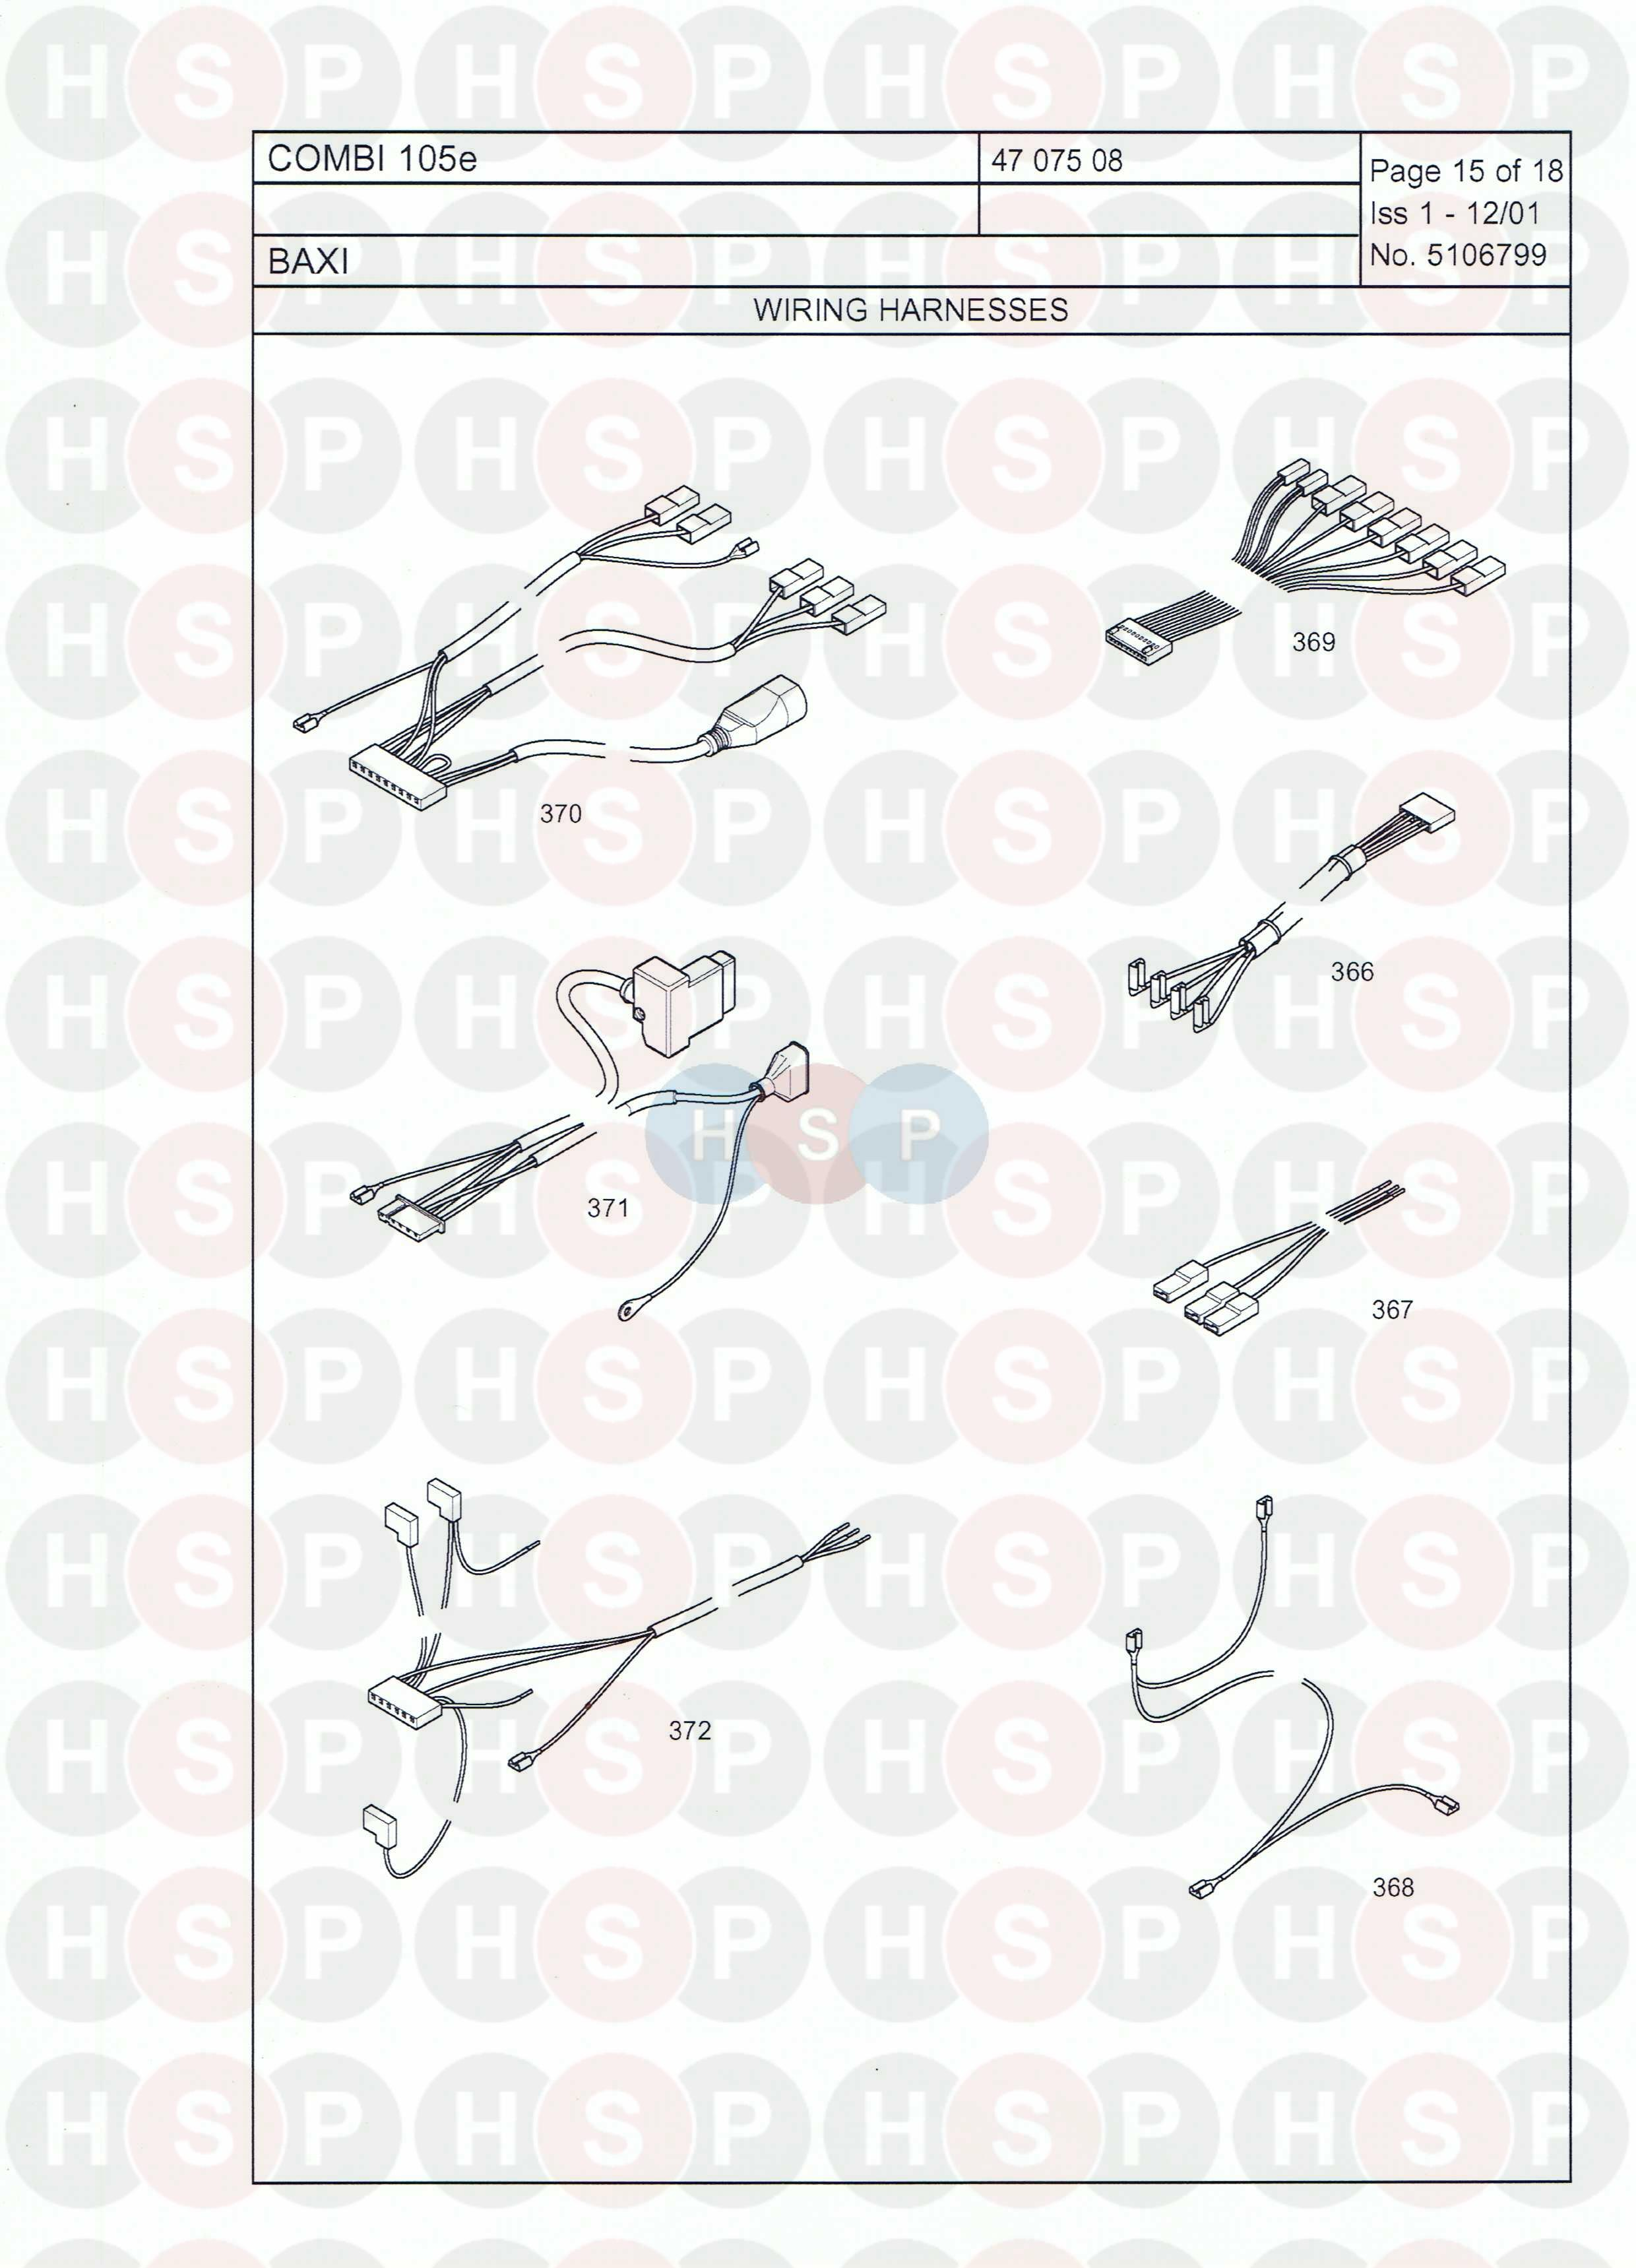 Baxi Combi 105e Wiring Diagram Heating Spare Parts